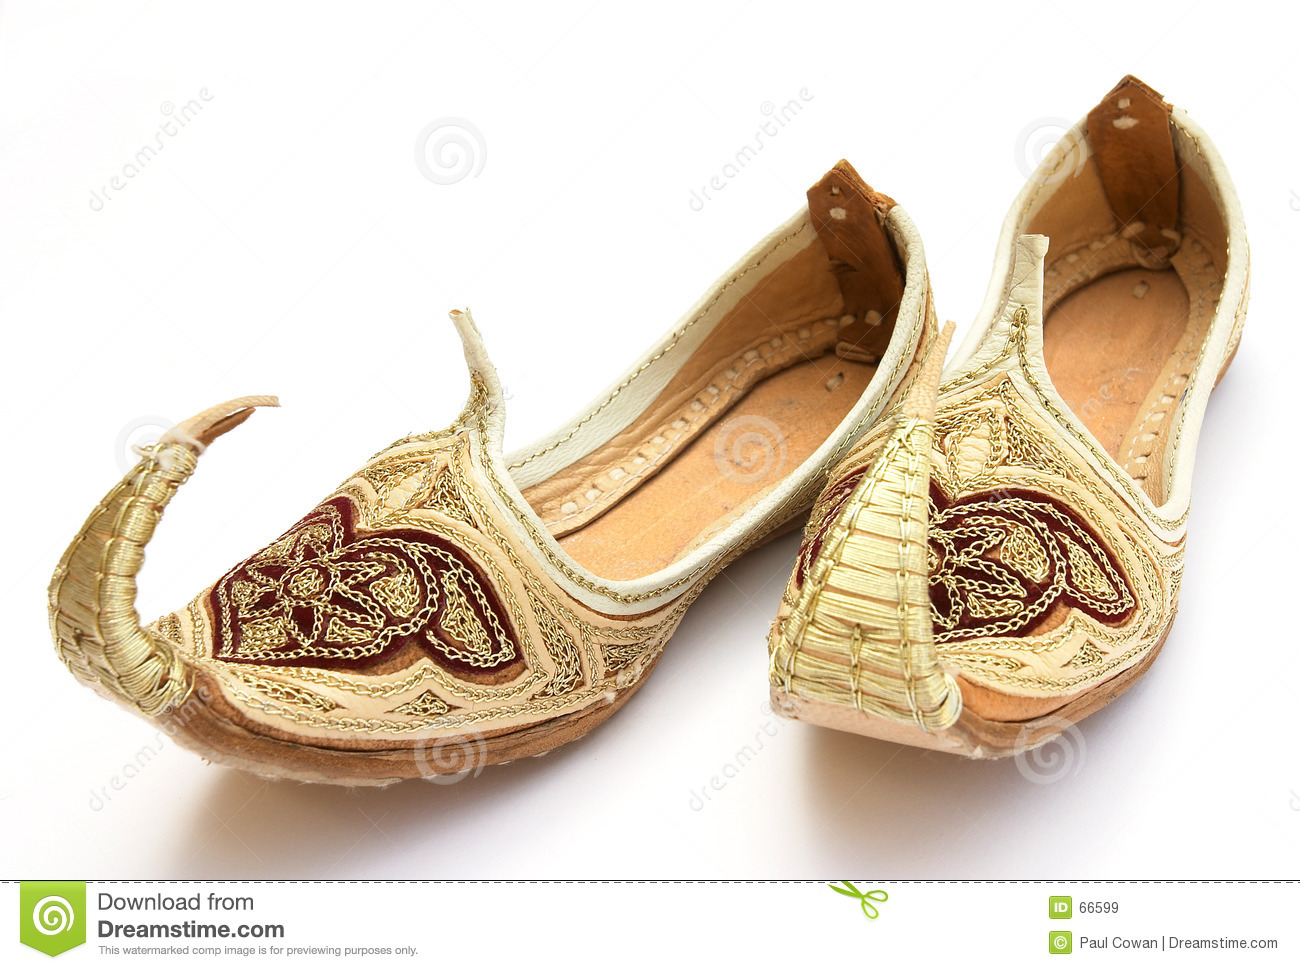 pair of miniature Persian or Arab shoes in the Aladdin style.